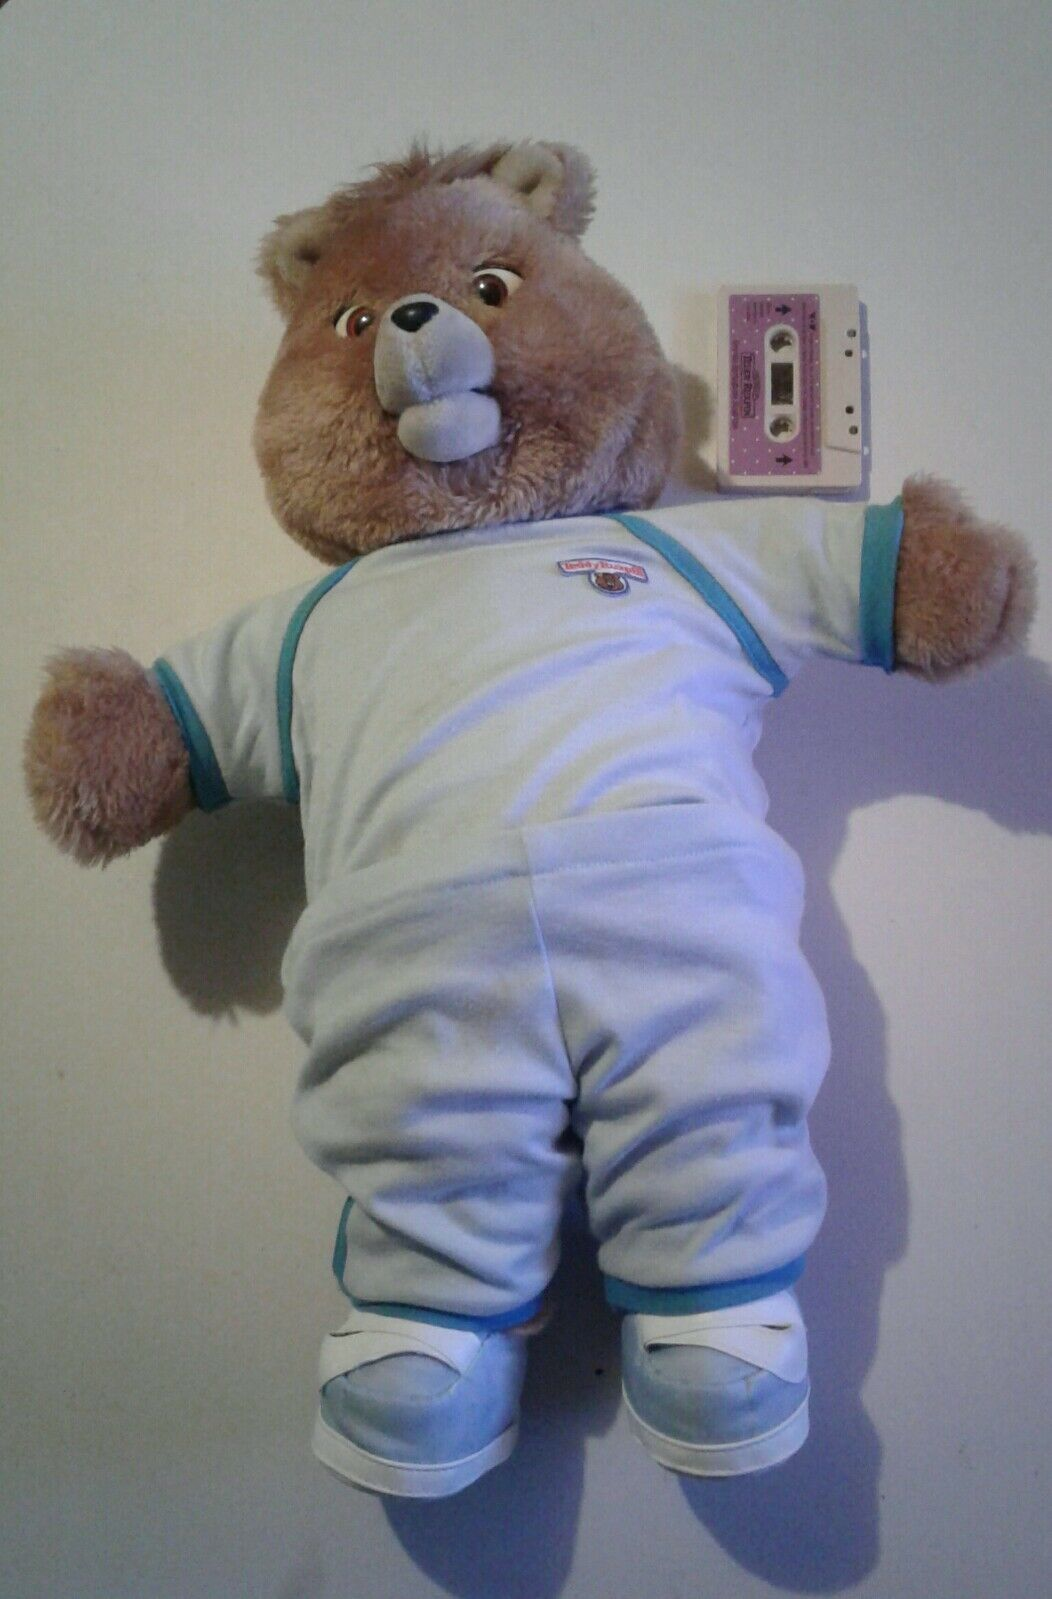 1985 Vintage (It lavoros)Teddy lavoros)Teddy lavoros)Teddy Ruxpin The Original storiatelling Teddy orso 98ee51